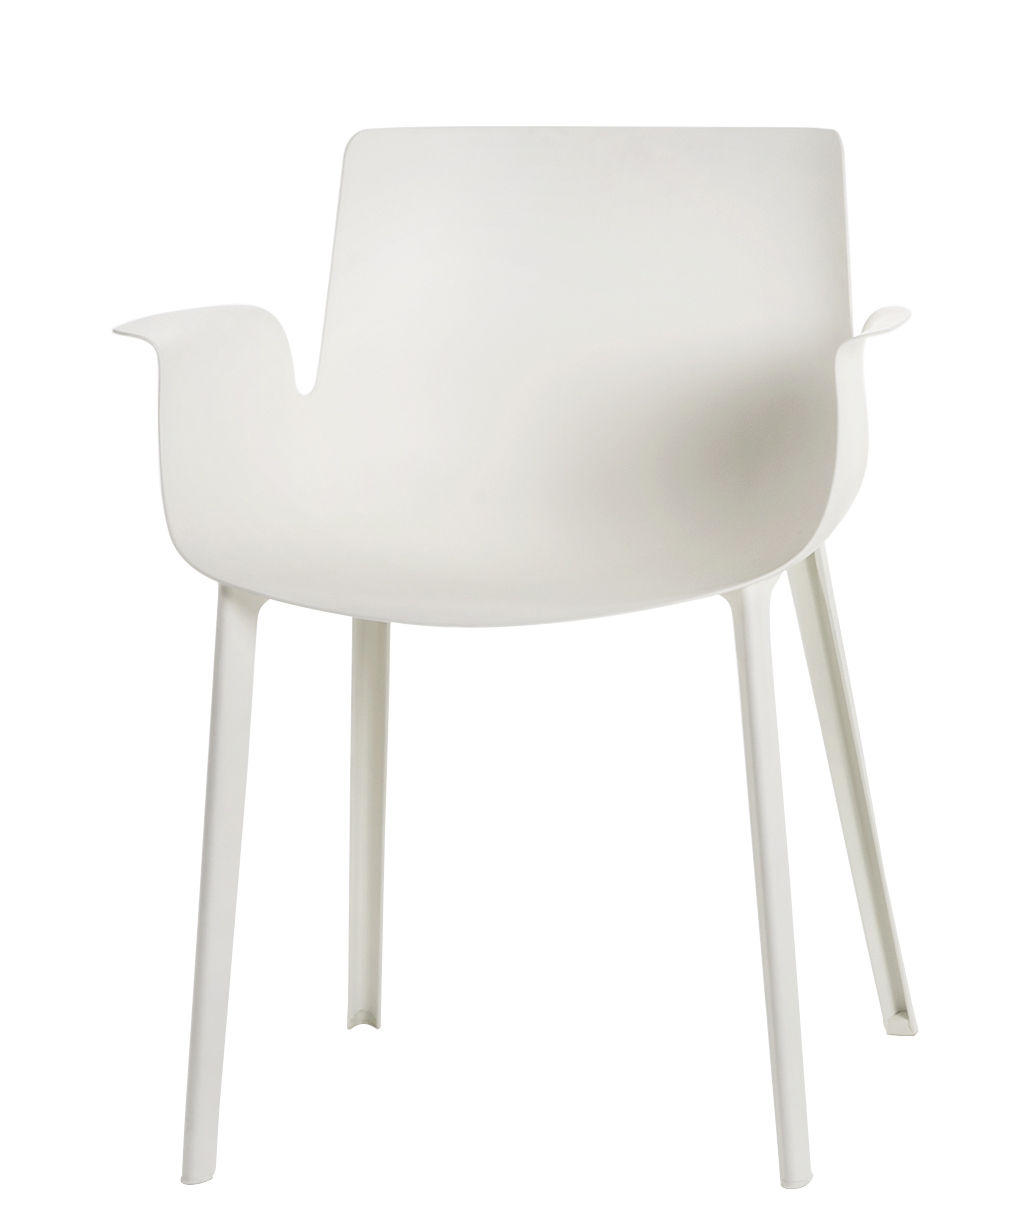 Piuma armchair plastic white by kartell for Kartell plastic chair